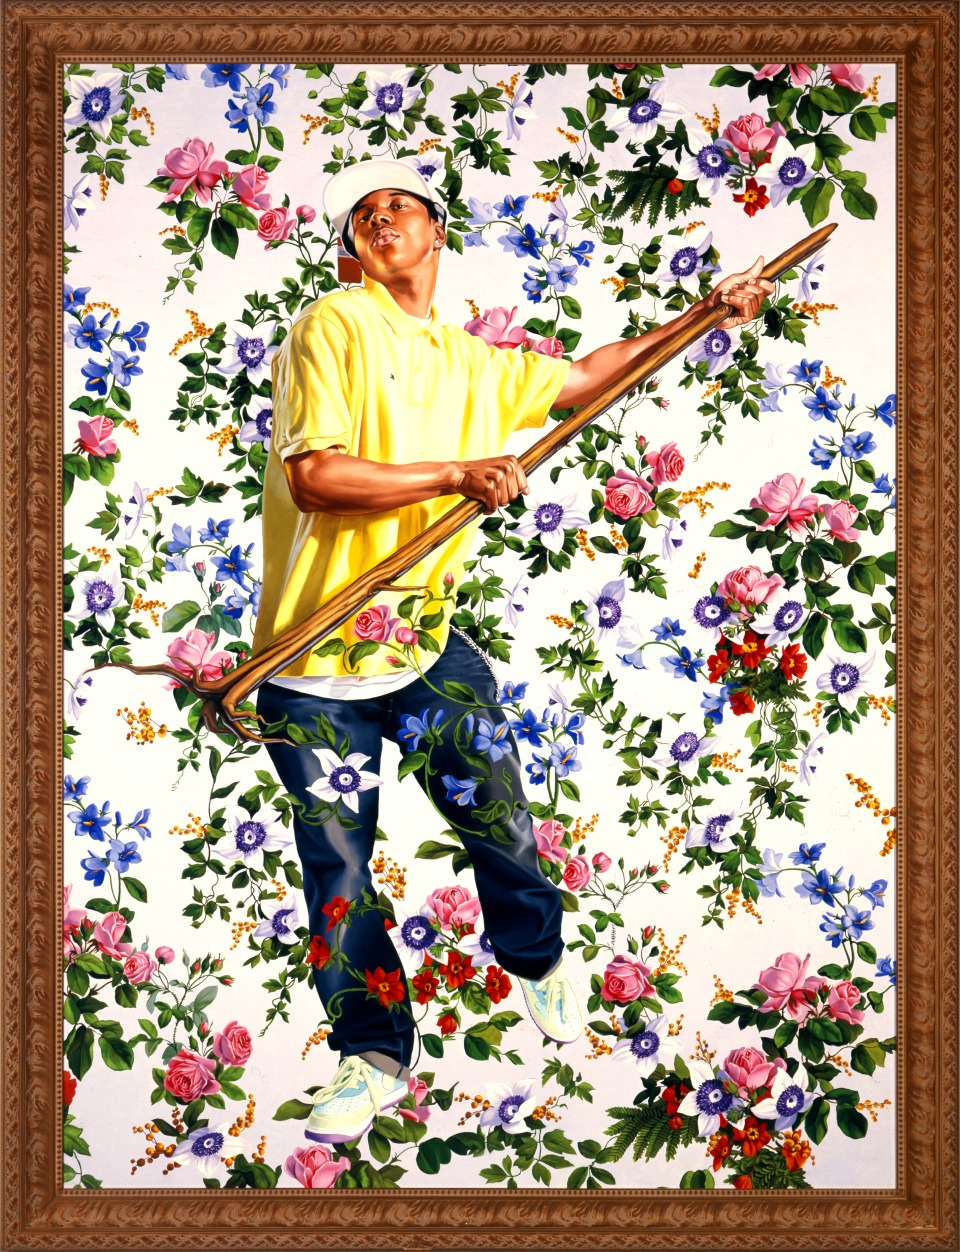 "Kehinde Wiley, Design for a Stained Glass Window with Wild Man, 2006. Oil on canvas 96"" x 72"""